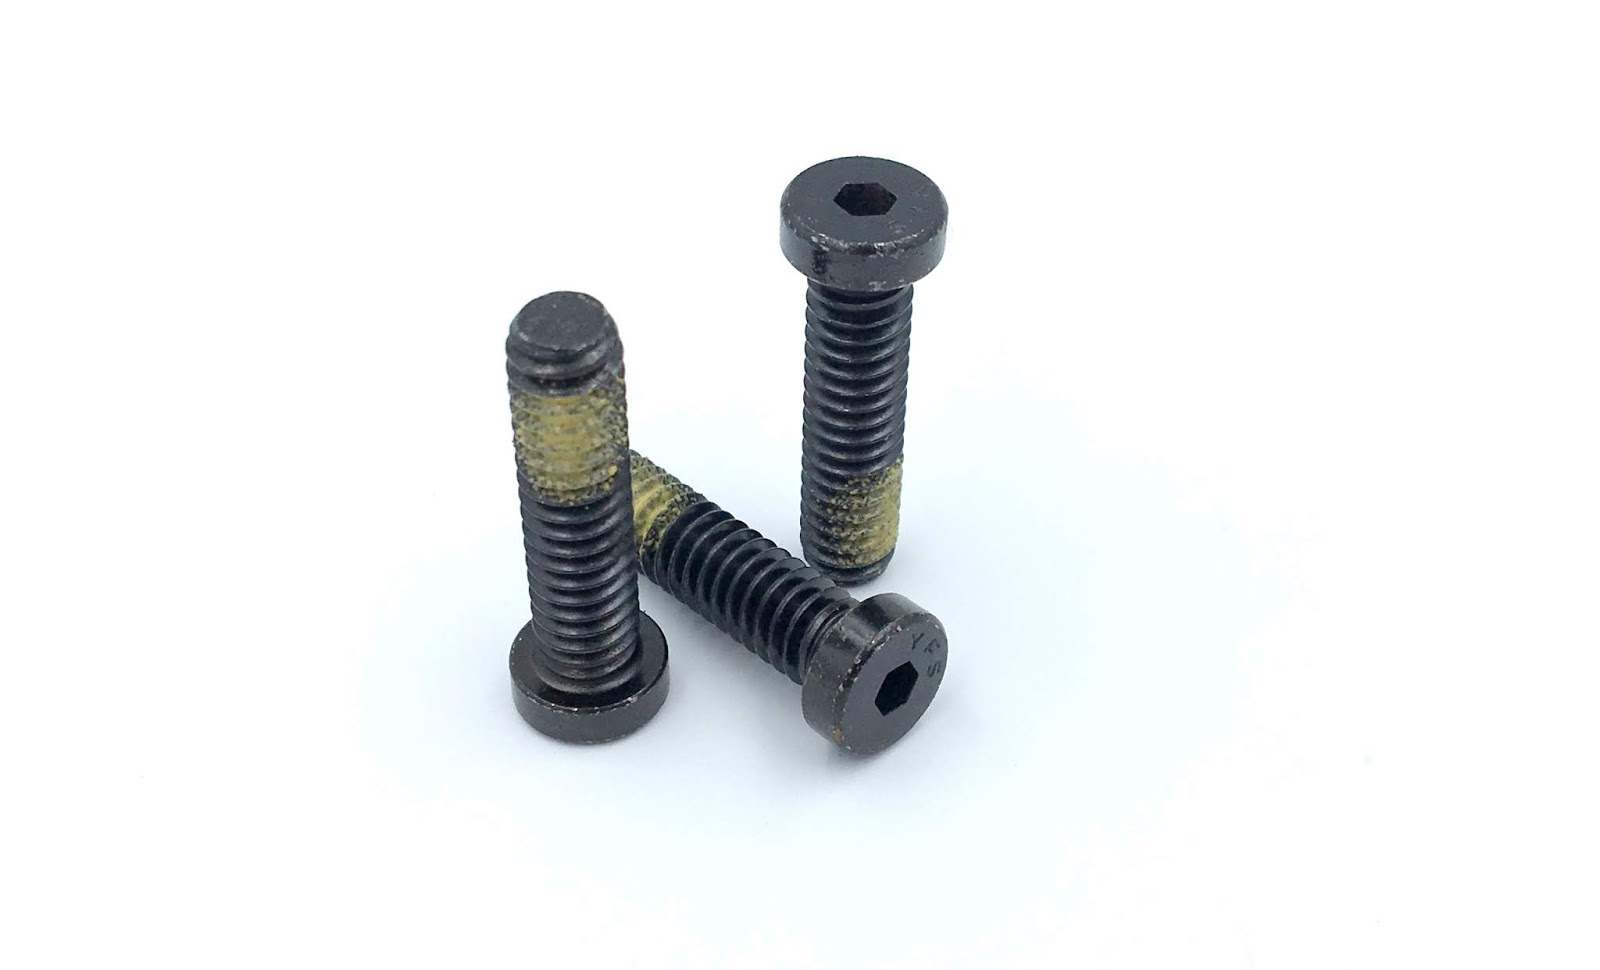 18-8 AISI 304 Stainless Steel 15 pcs 3//8-16 X 1 Shoulder Screws Thread-Locking Patch Hex Socket Drive